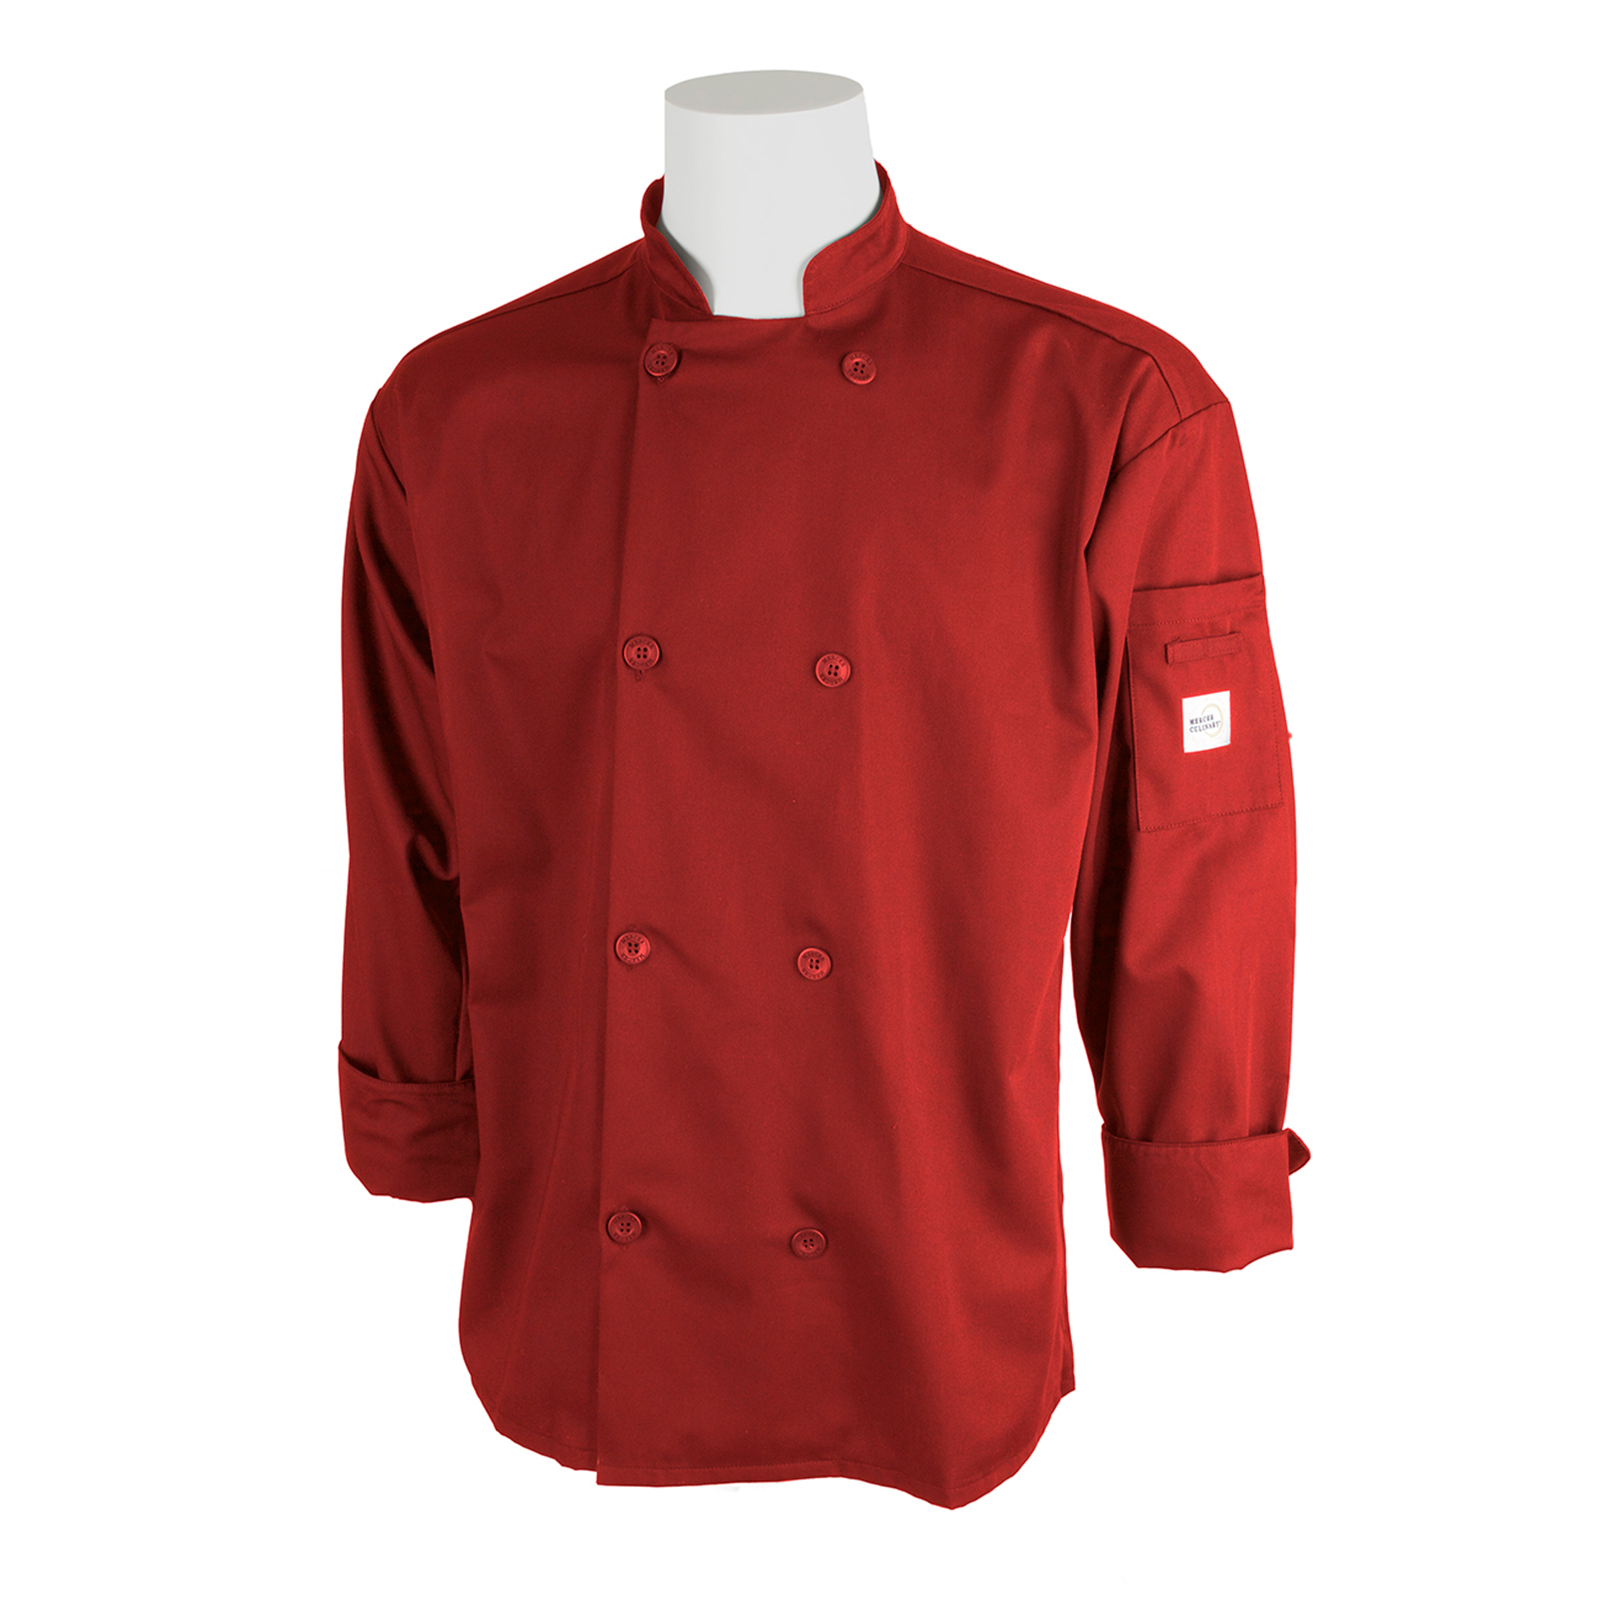 Mercer Culinary M60010RDS chef's coat